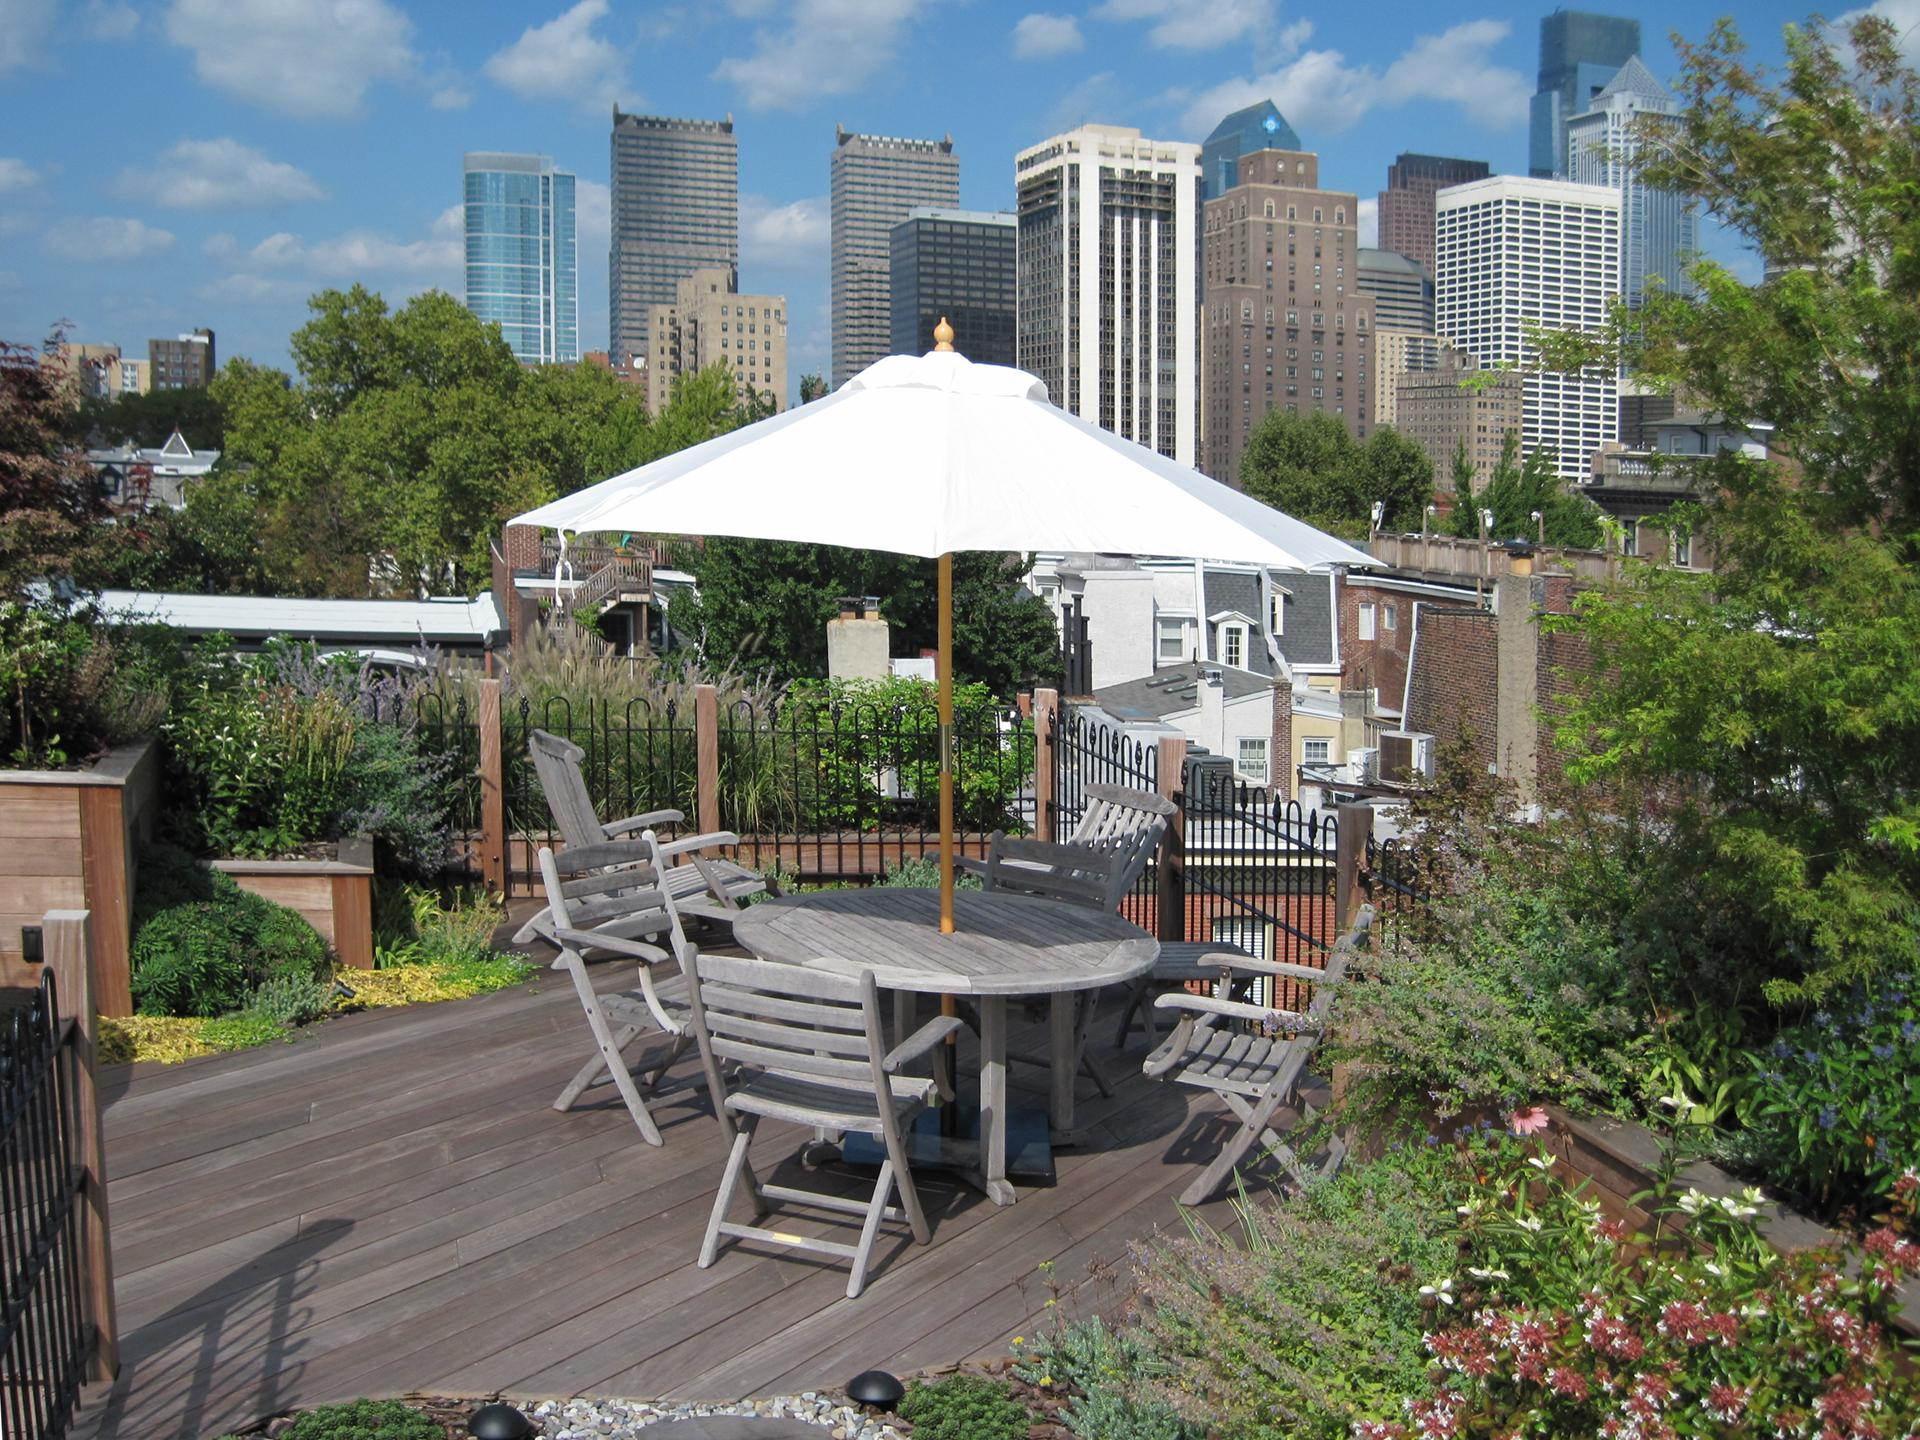 roof-top-dining-outdoor-room-philadelphia-pa-skyline-city-living